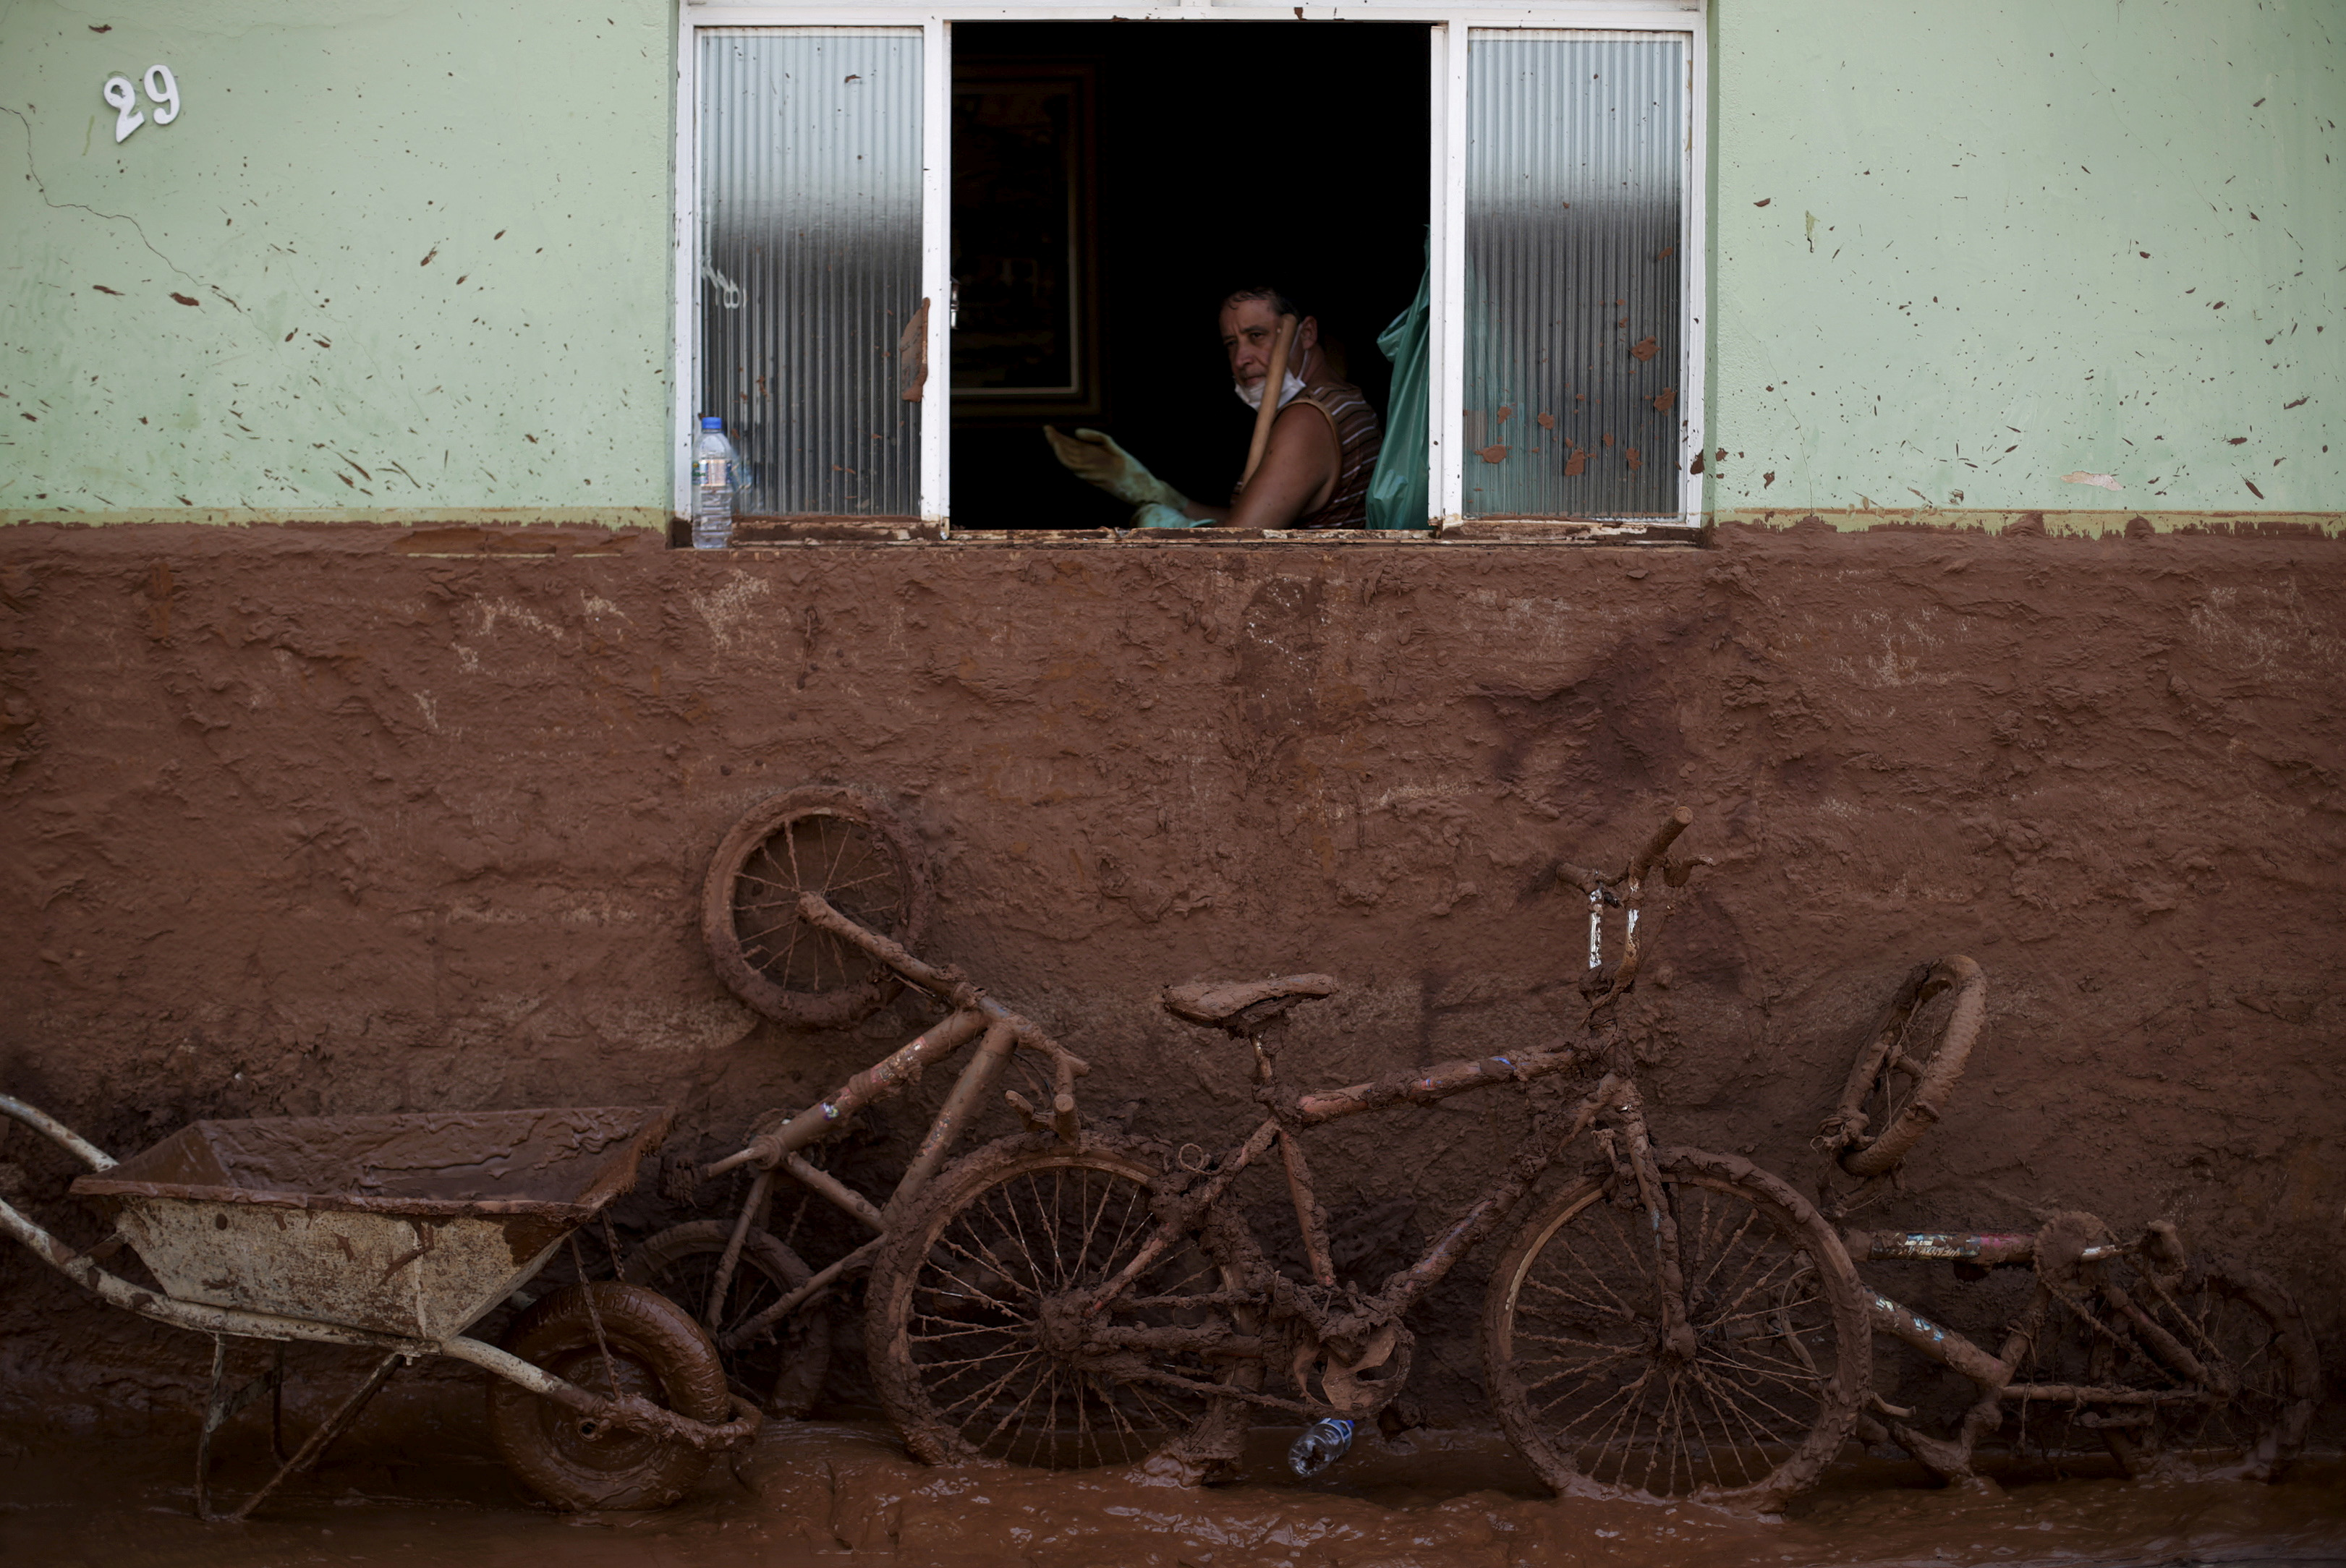 A man works on the cleaning of a house flooded with mud after a dam, owned by Vale SA and BHP Billiton Ltd burst, in Barra Longa, Brazil, November 7, 2015. REUTERS/Ricardo Moraes/File Photo